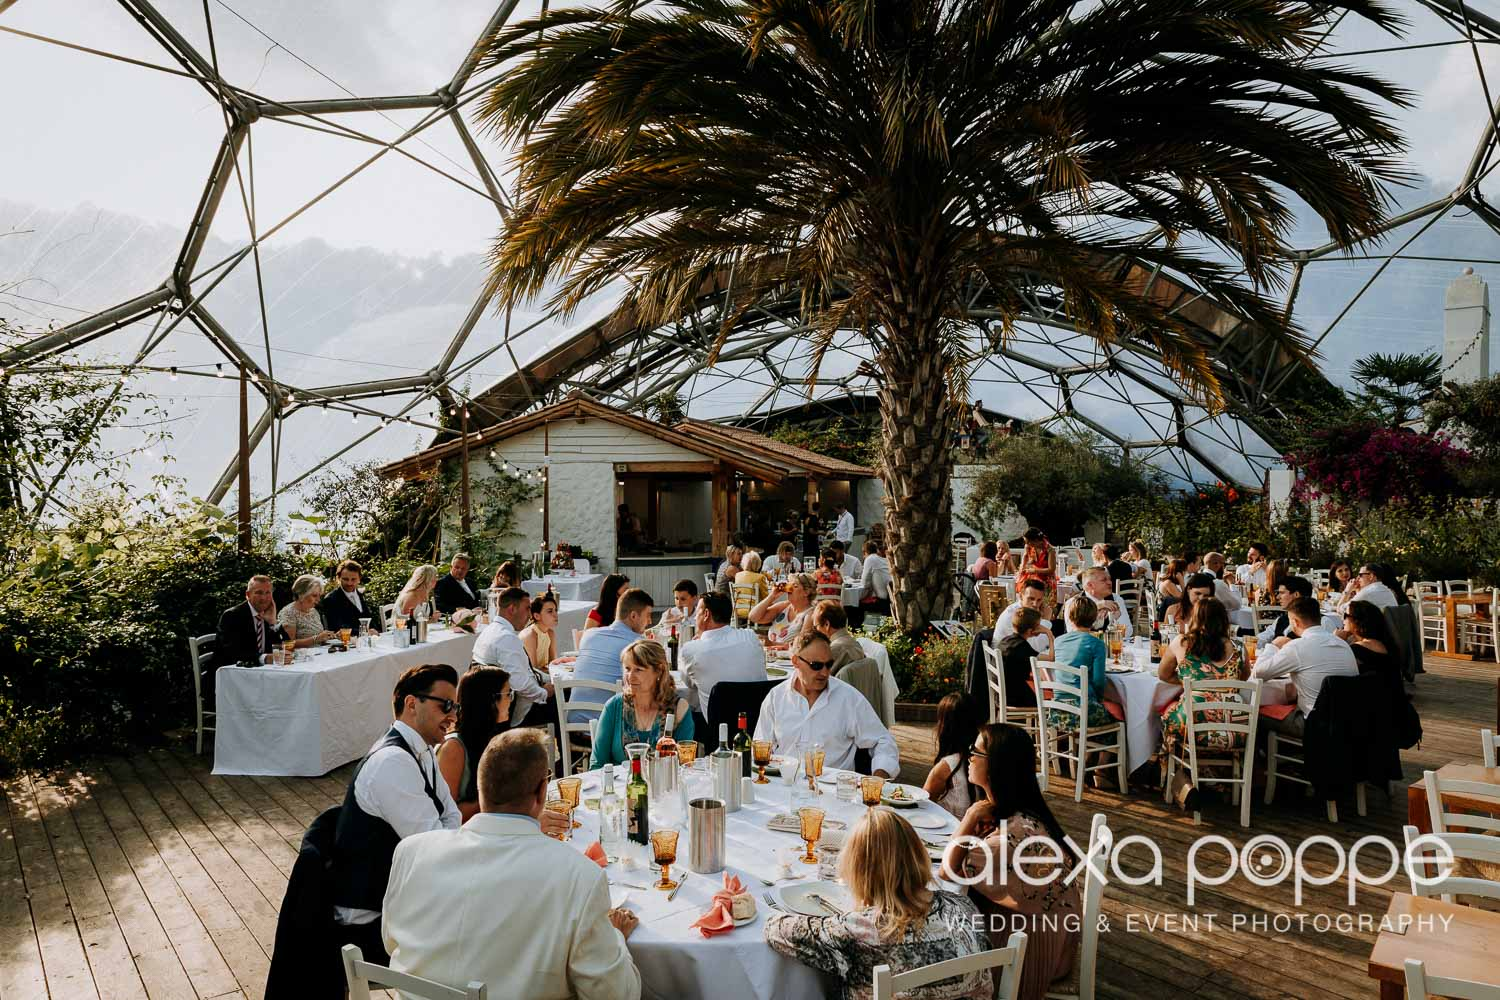 VA_wedding_edenproject_carnglaze_75.jpg